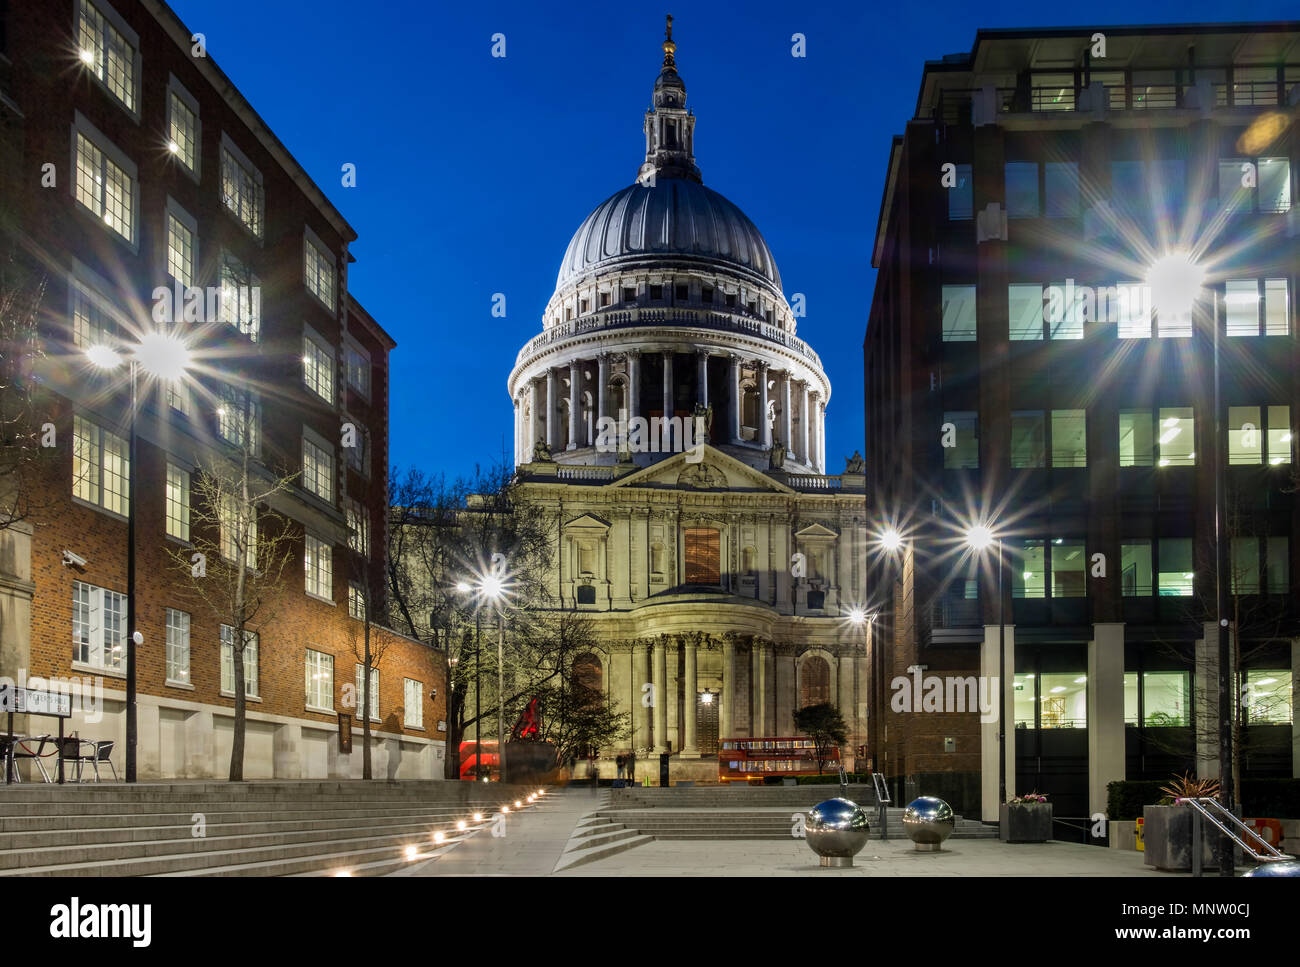 St Pauls Cathedral from Peters Hill at night, London, England, UK - Stock Image